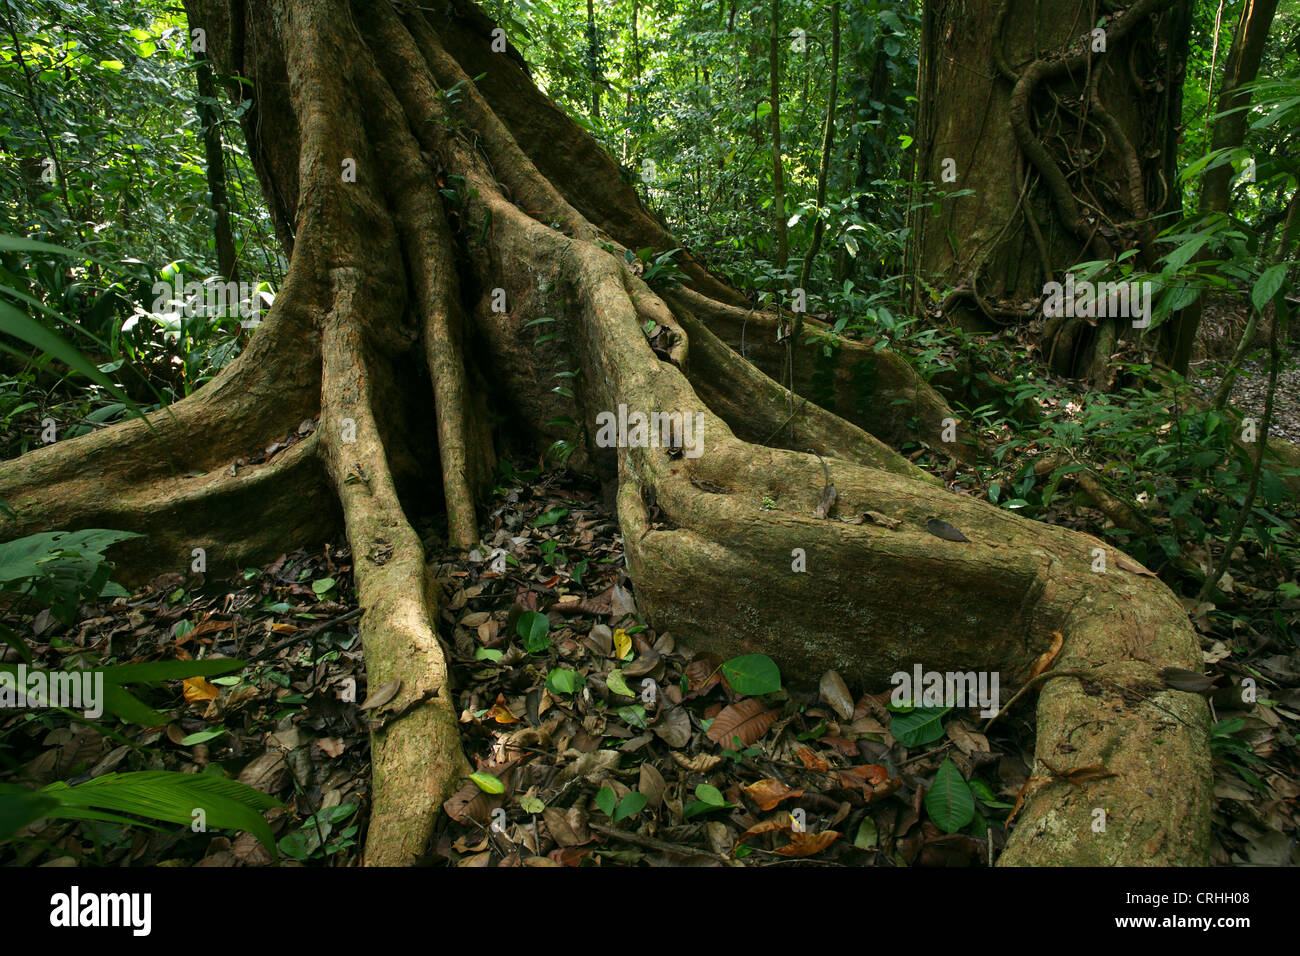 Buttress roots in rainforest. Corcovado National Park, Osa Peninsula, Costa Rica. March 2012. Stock Photo